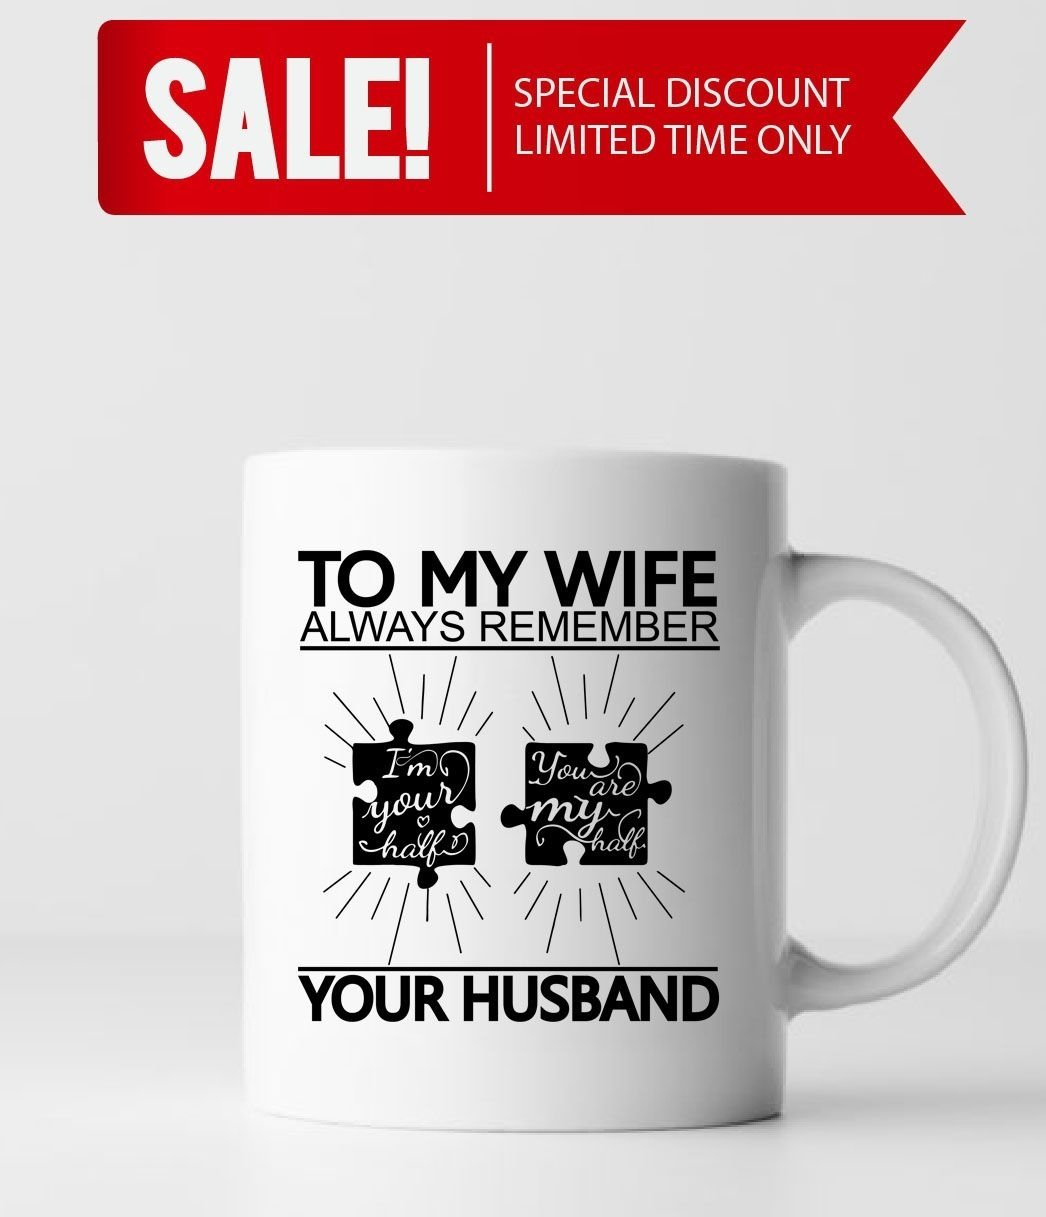 10 Beautiful Best Gift Ideas For Wife to my wife you are my half wife gift ideas wife gifts wife 4 2020